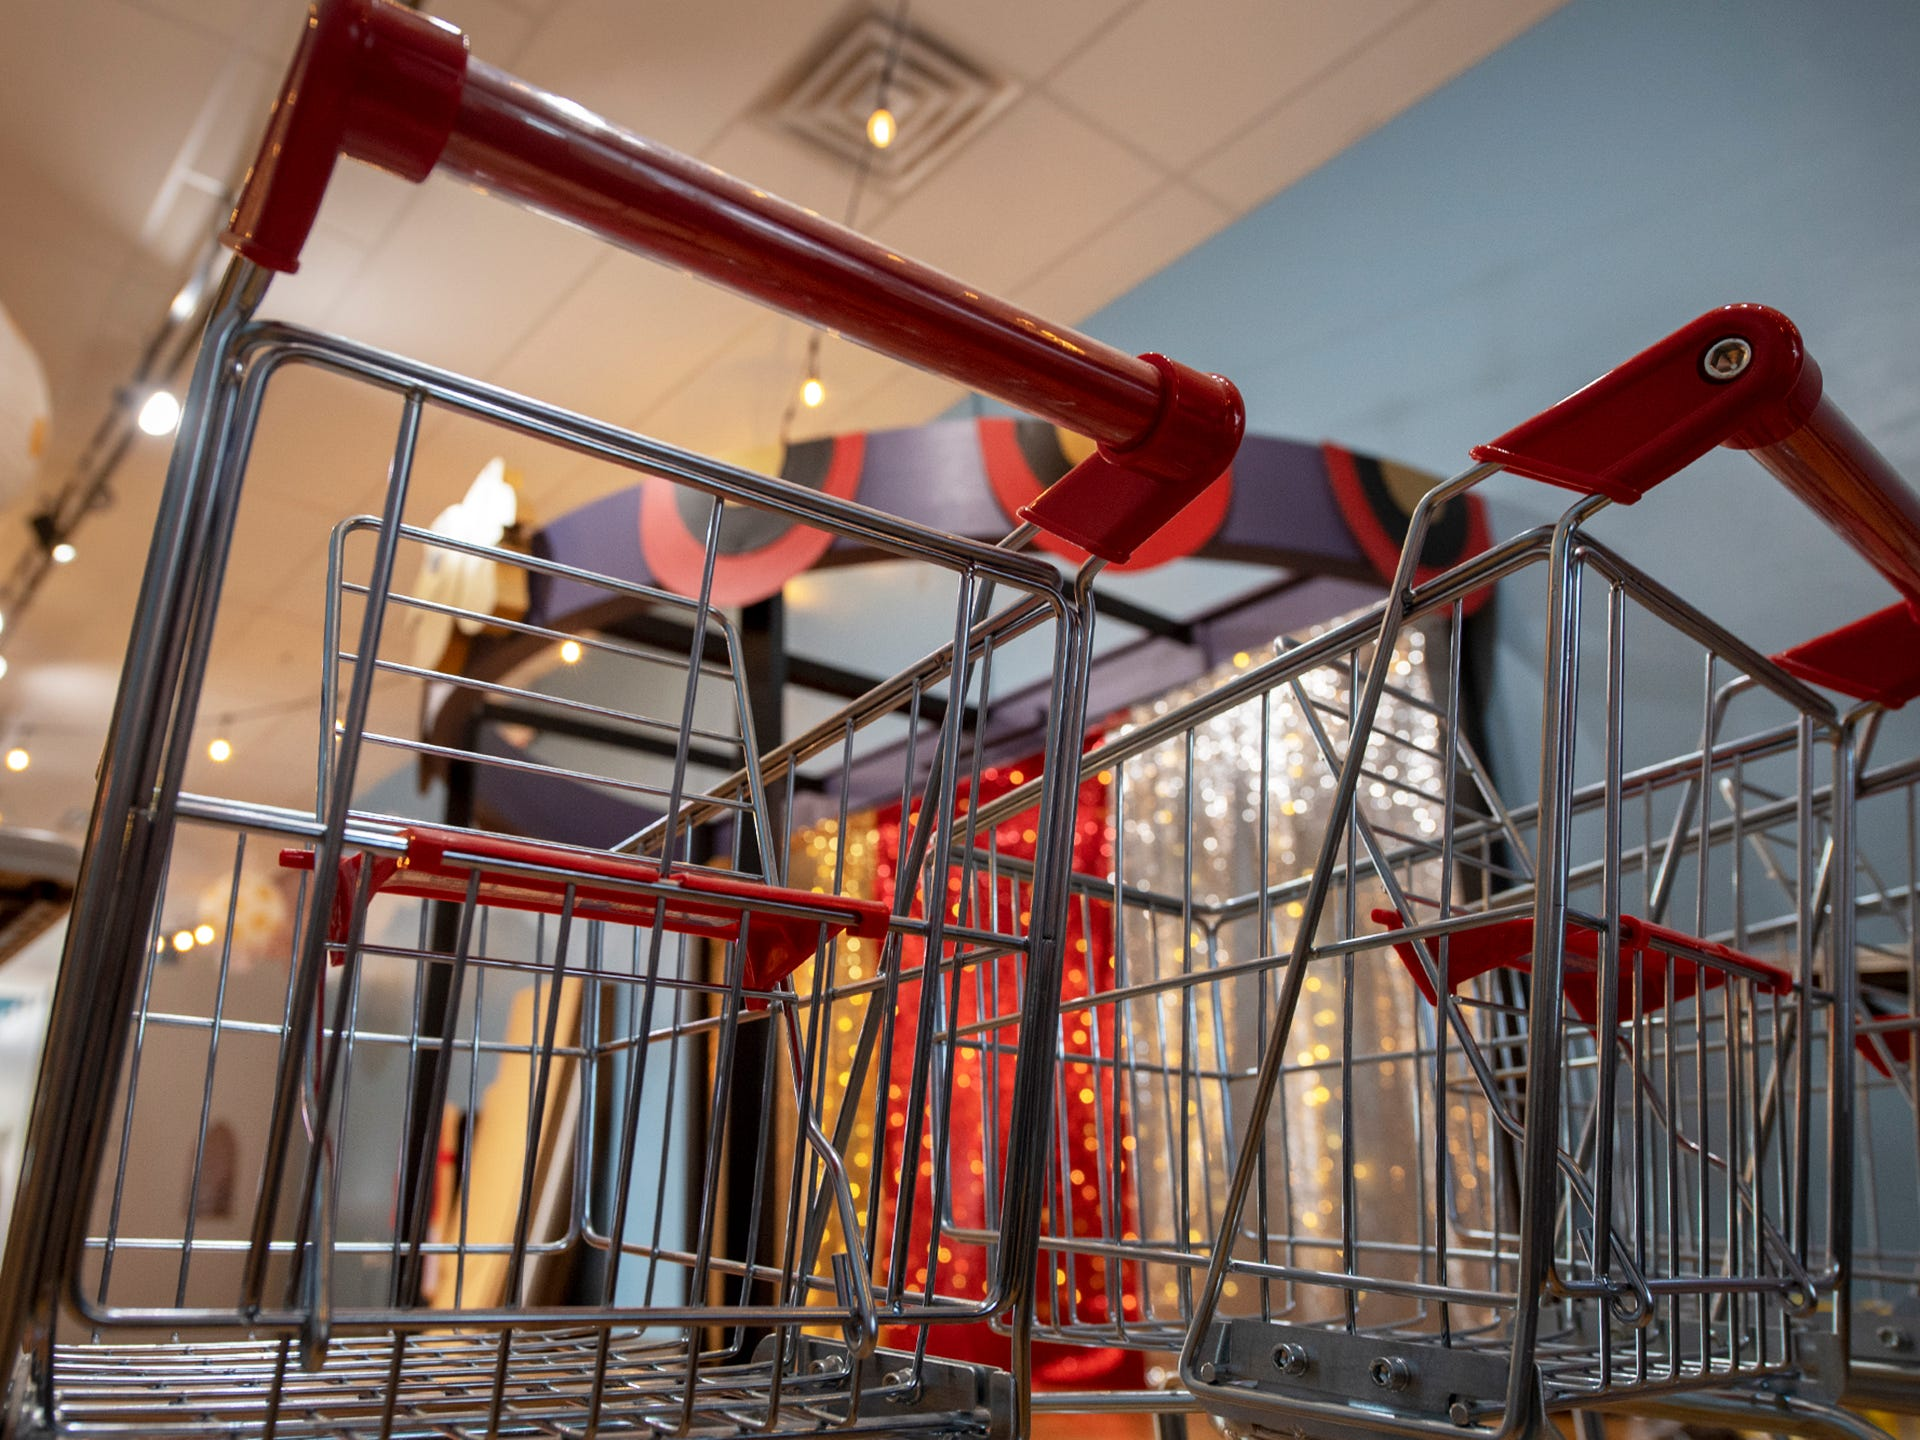 Tiny shopping carts will be part of the Mini Market, an interactive play area at the Curious Little Playhouse.